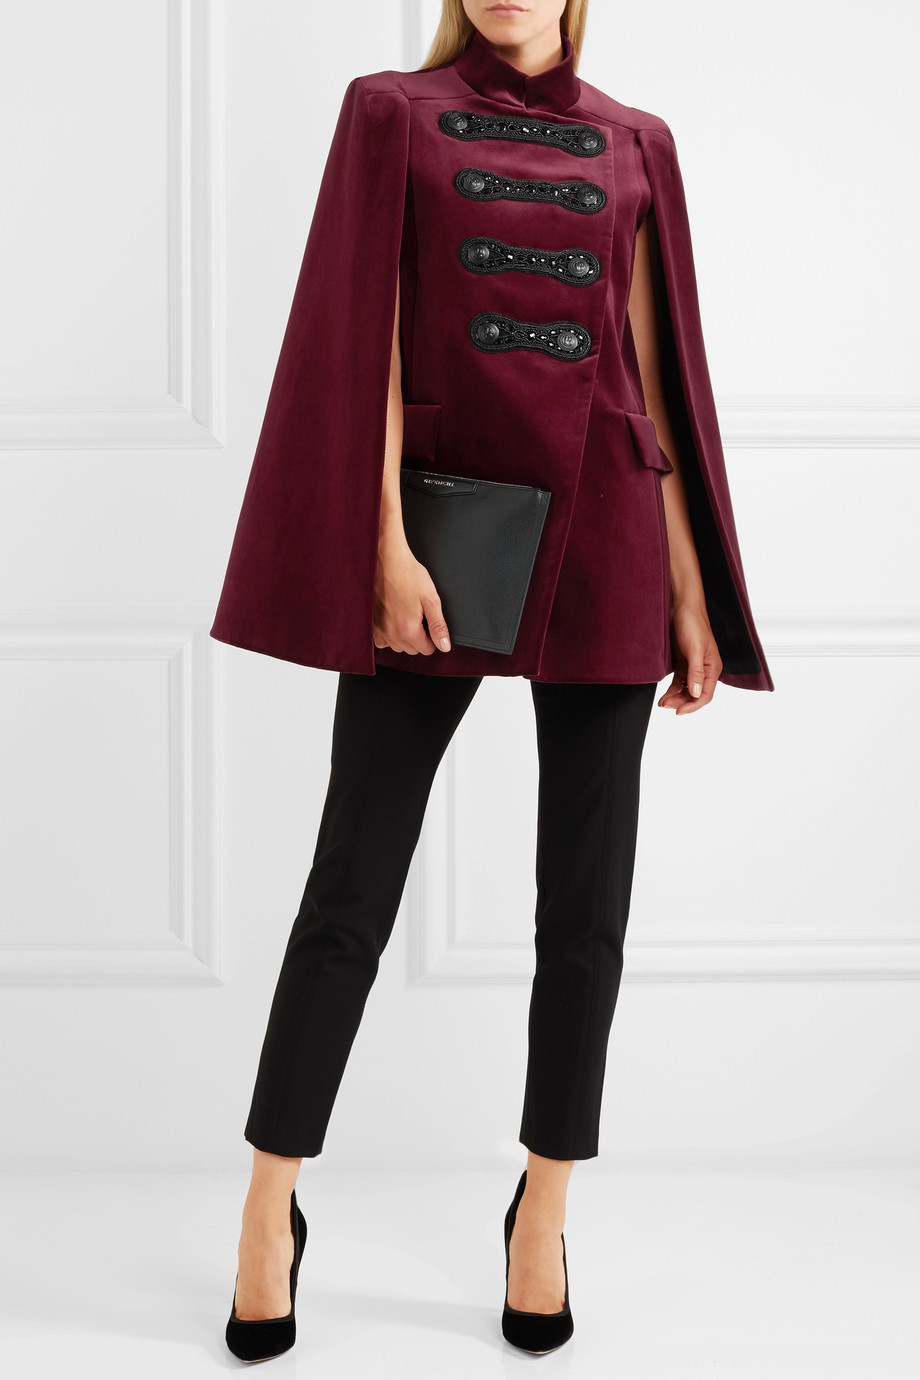 Pierre Balmain Embellished cotton-blend velvet cape $1,750